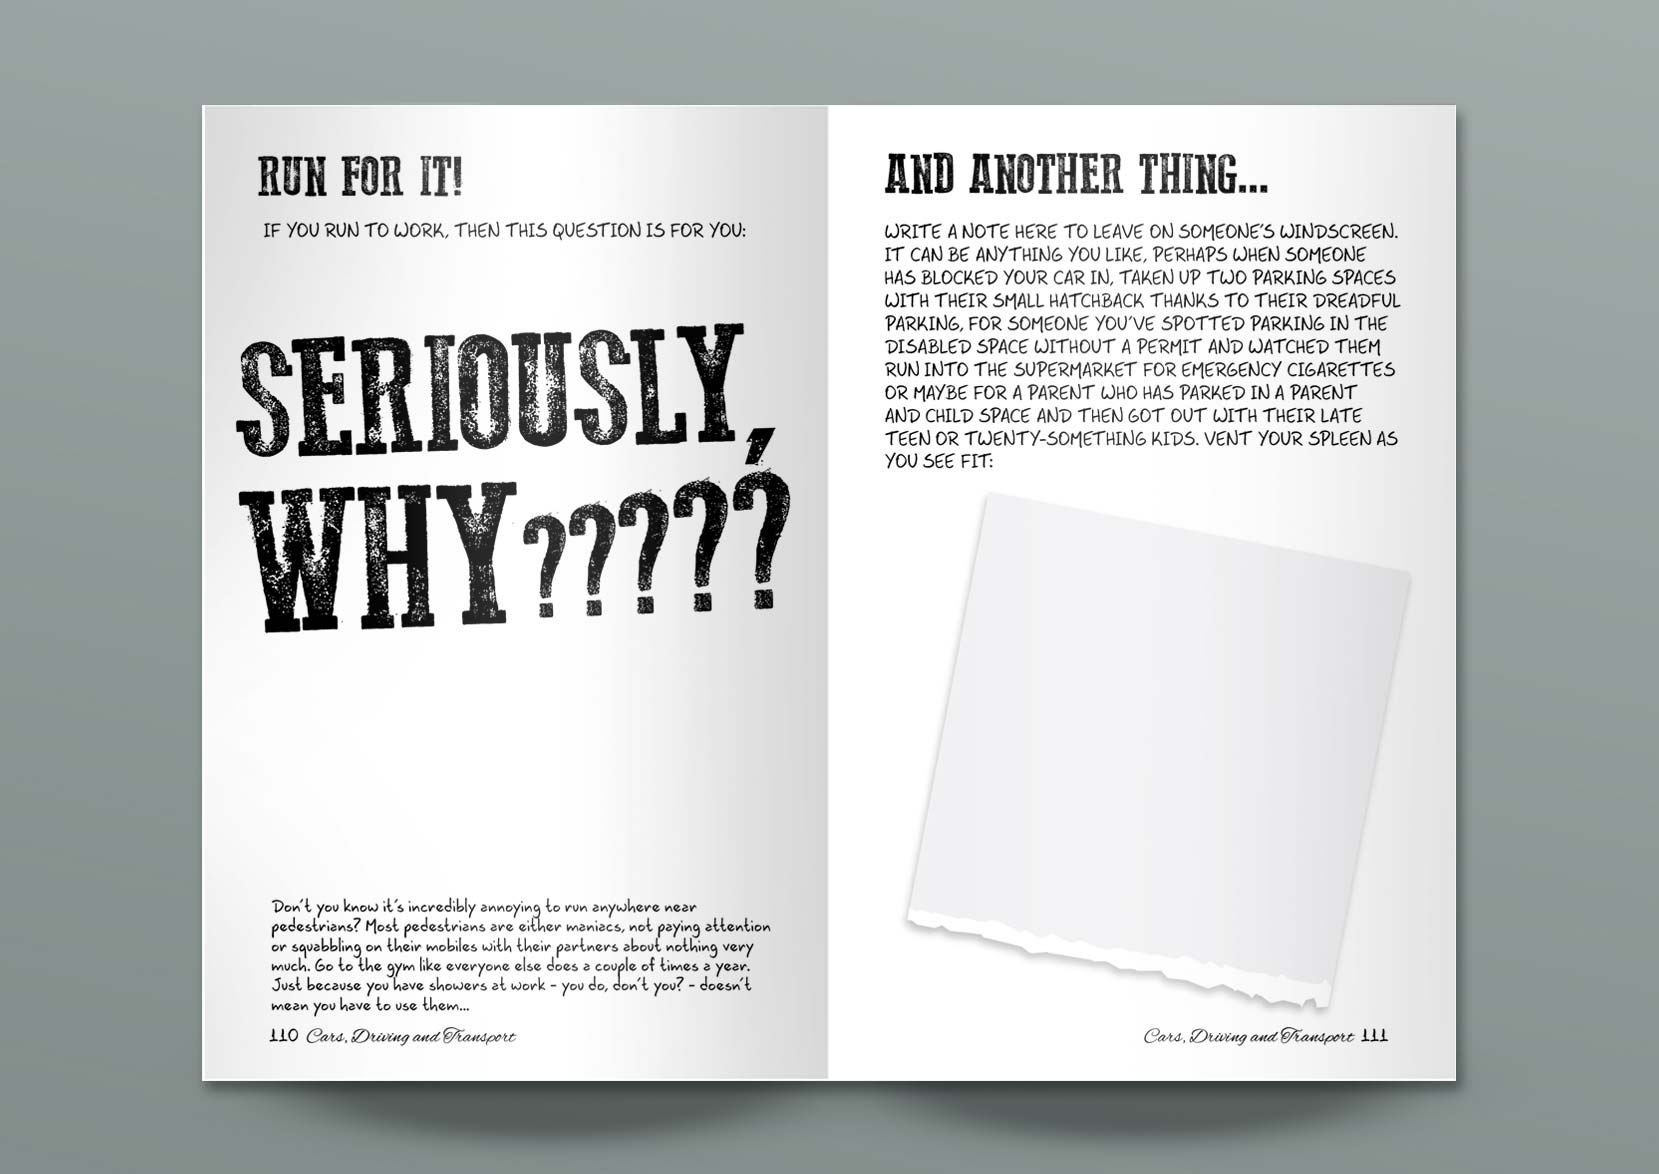 F-ck-Up-THis-Book5_richardbudddesign_web.jpg